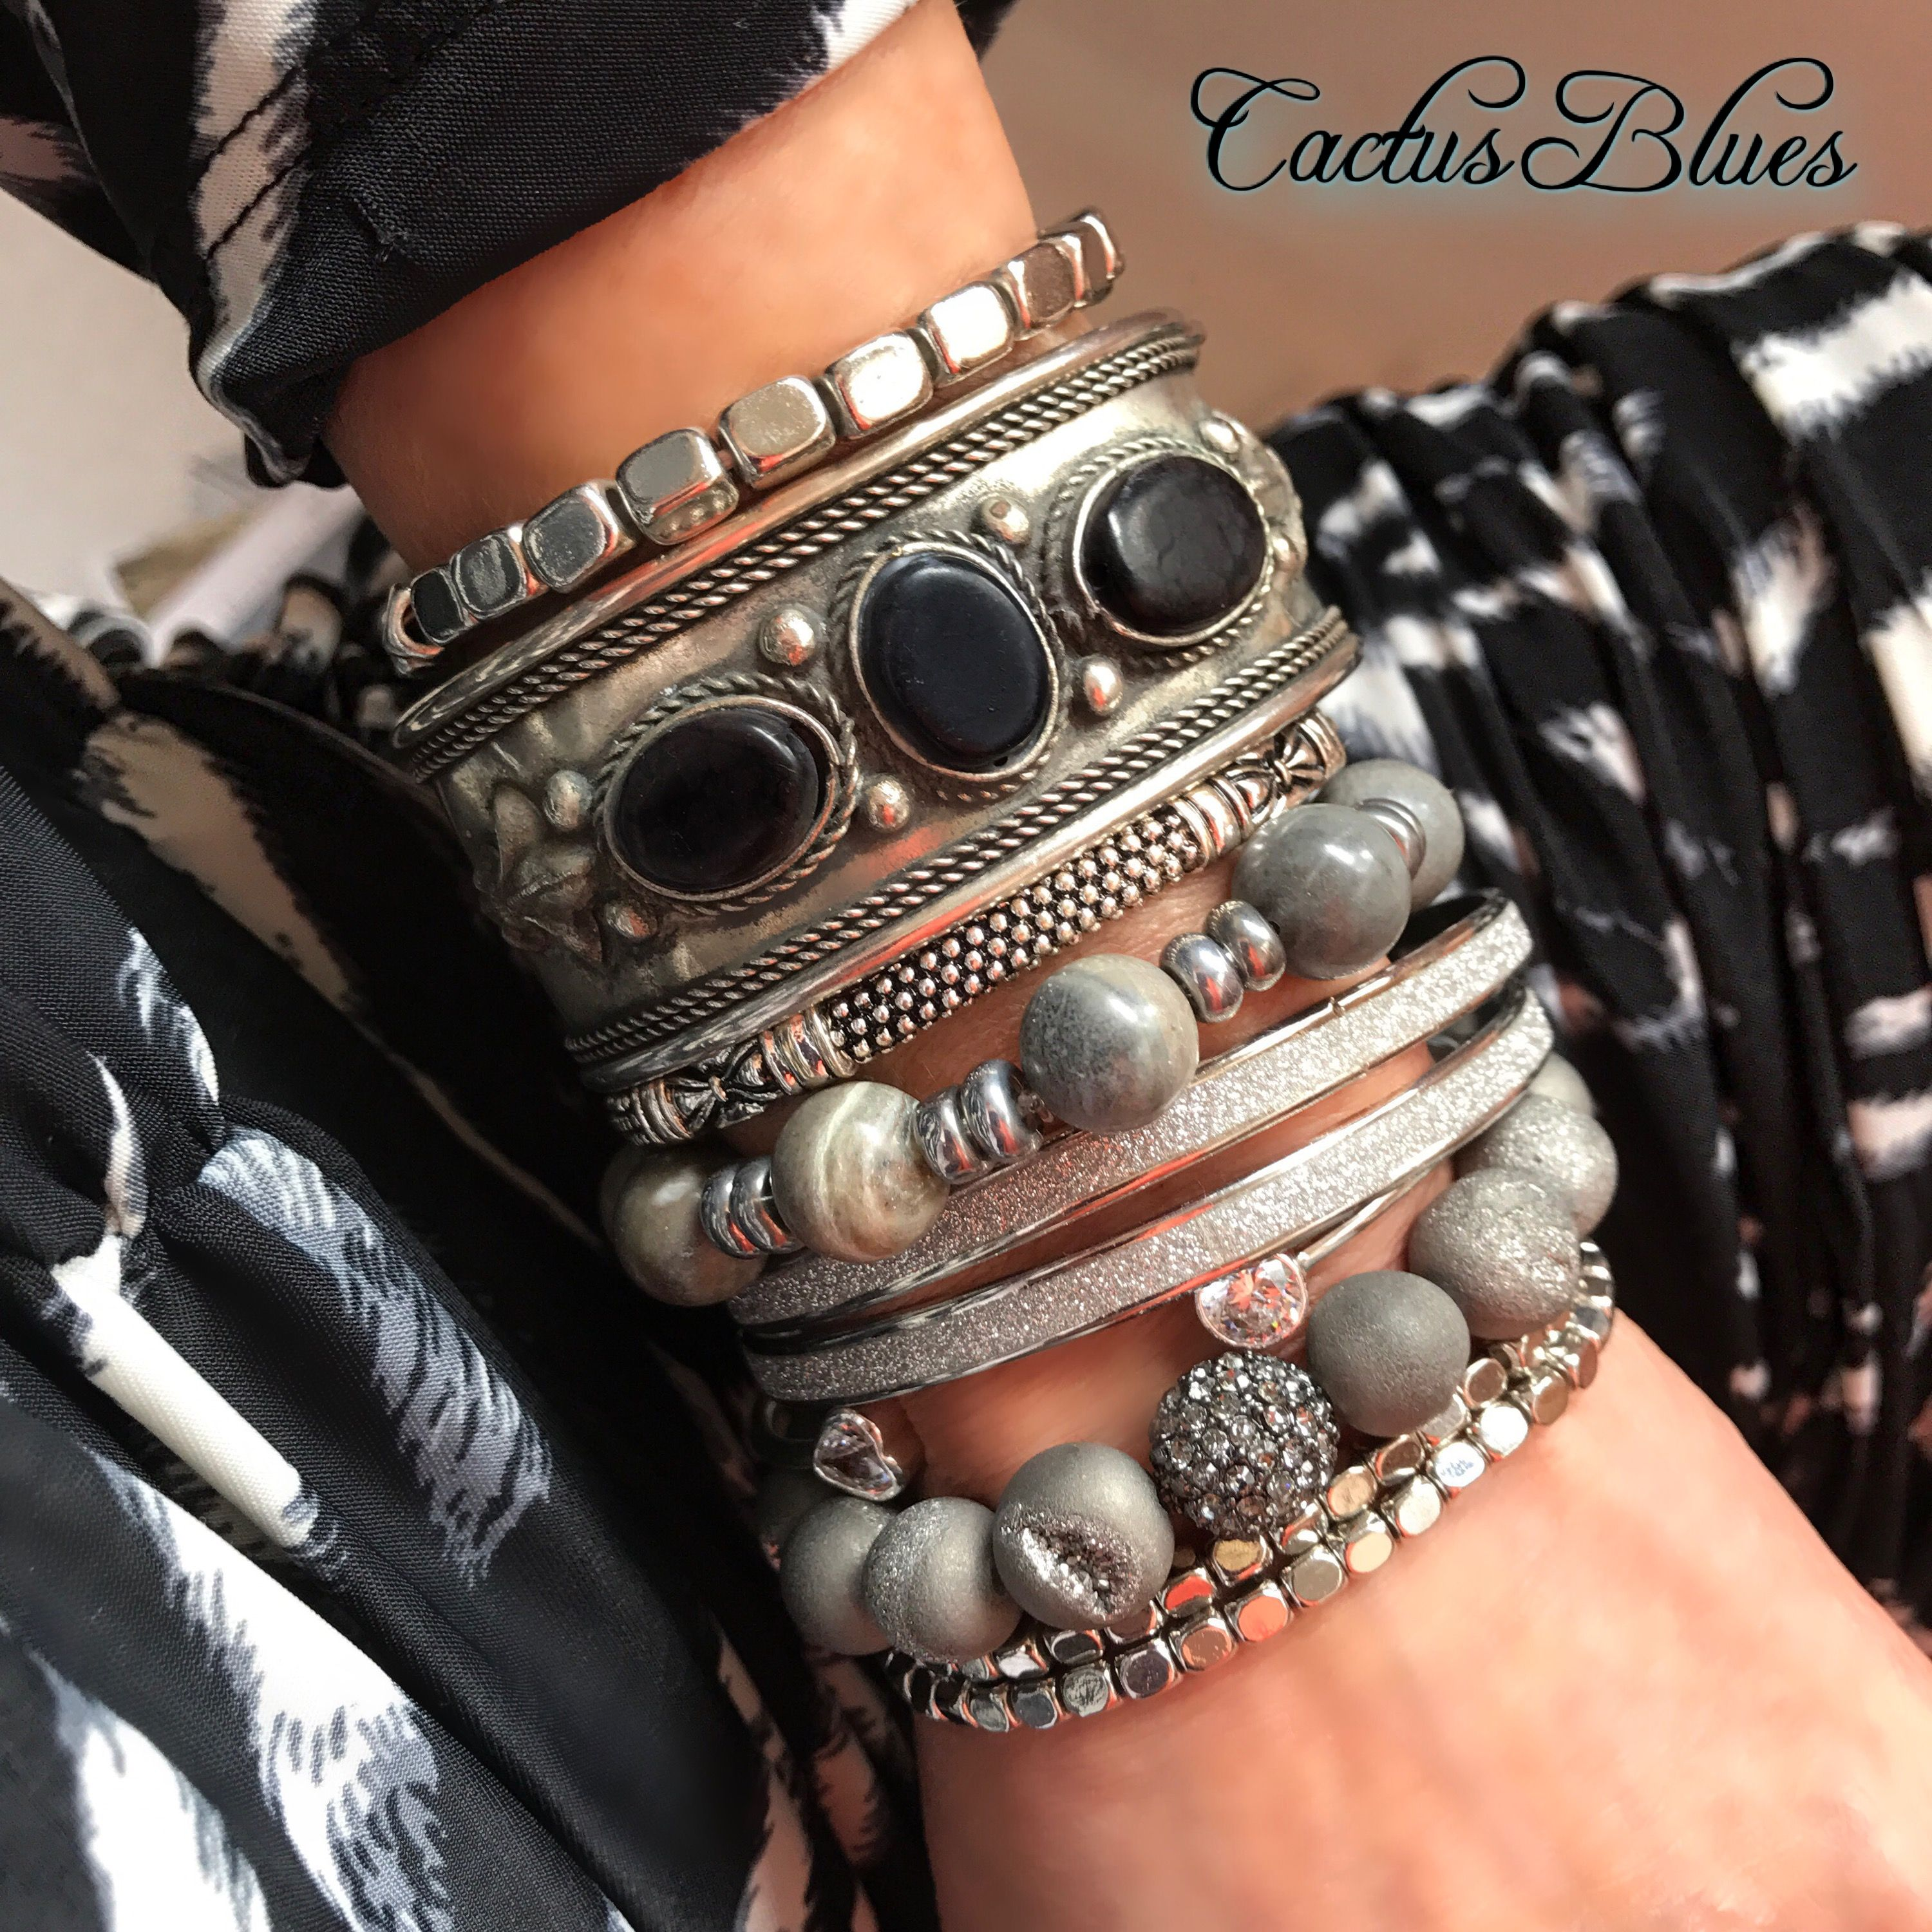 These black silver and gray bracelets are the perfect accessories